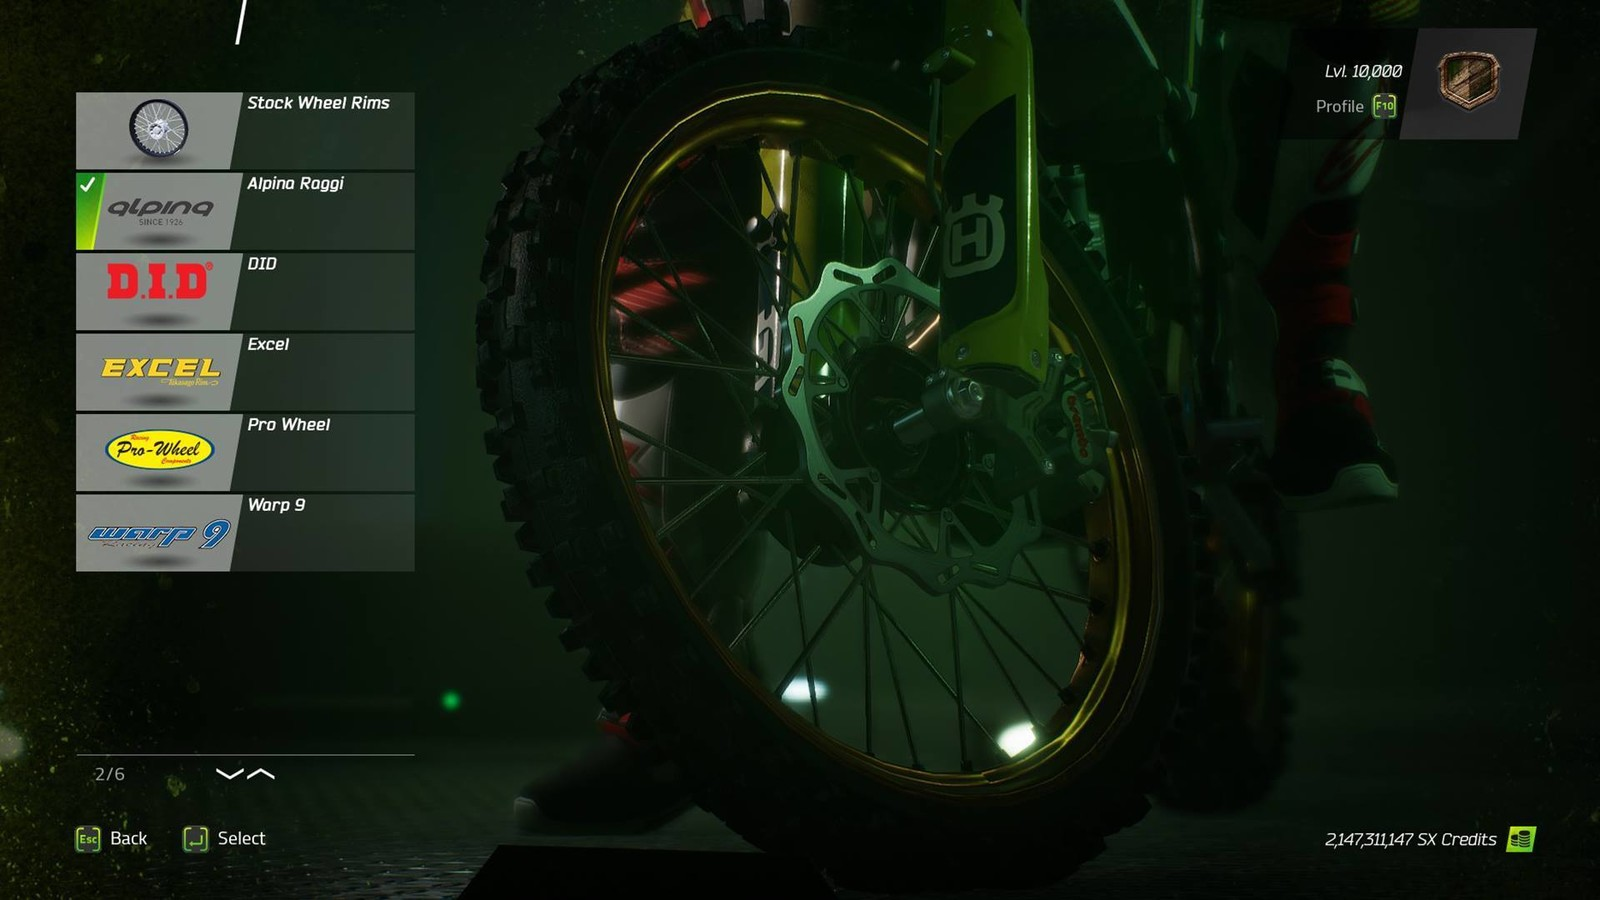 More bike customization. Are you excited for this game yet? We sure are.